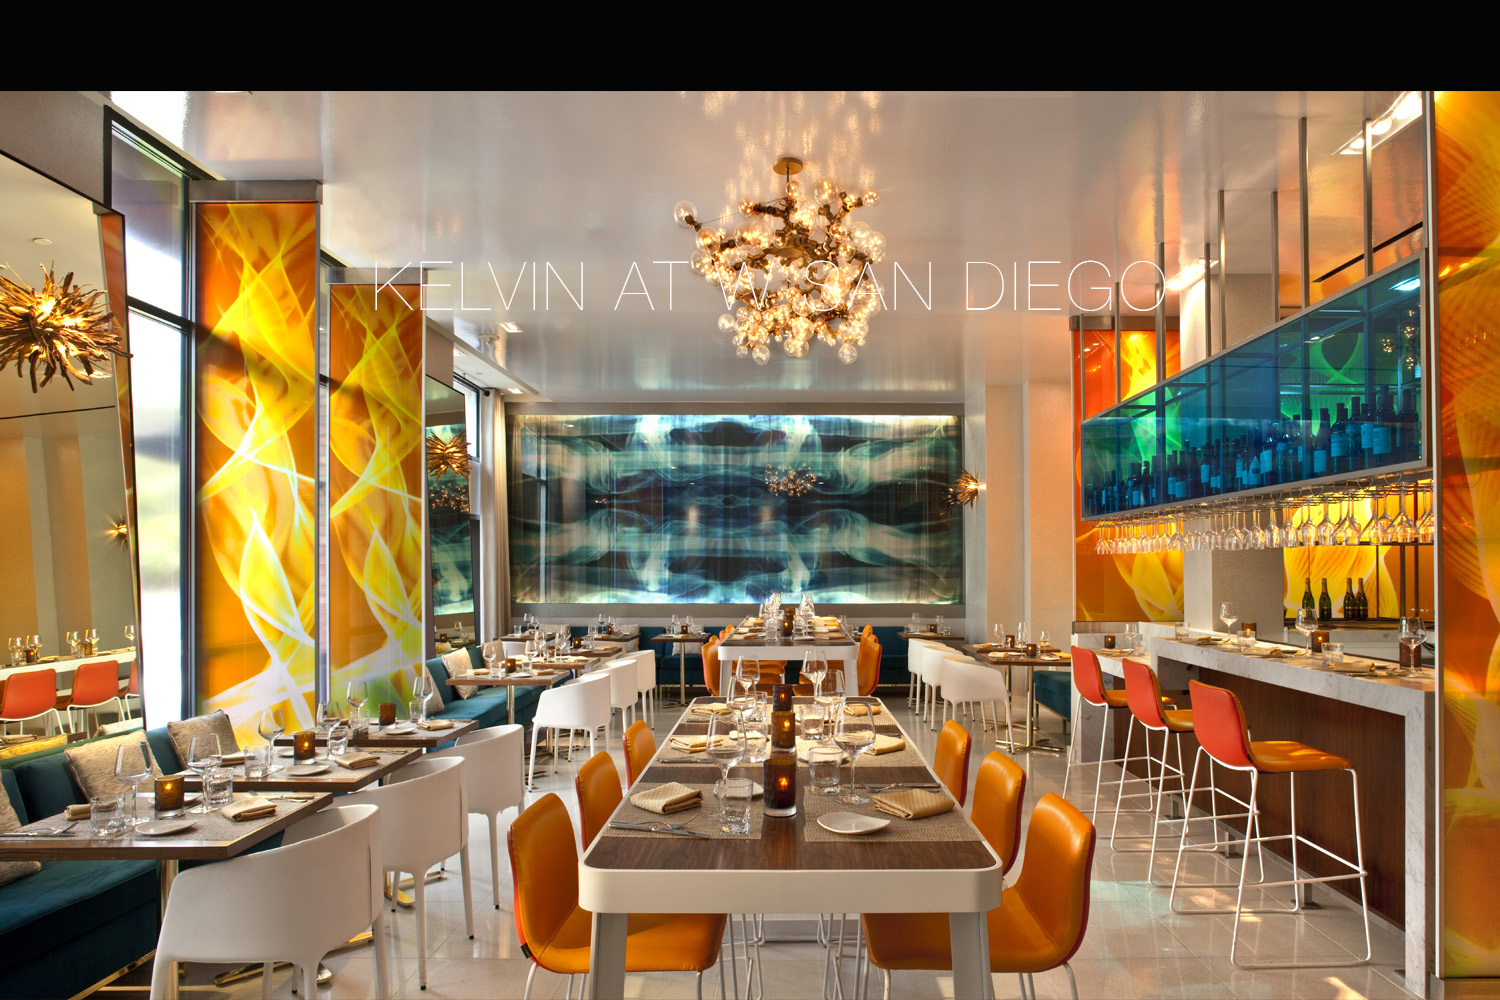 Kelvin at W Hotel San Diego by Mister Important Design